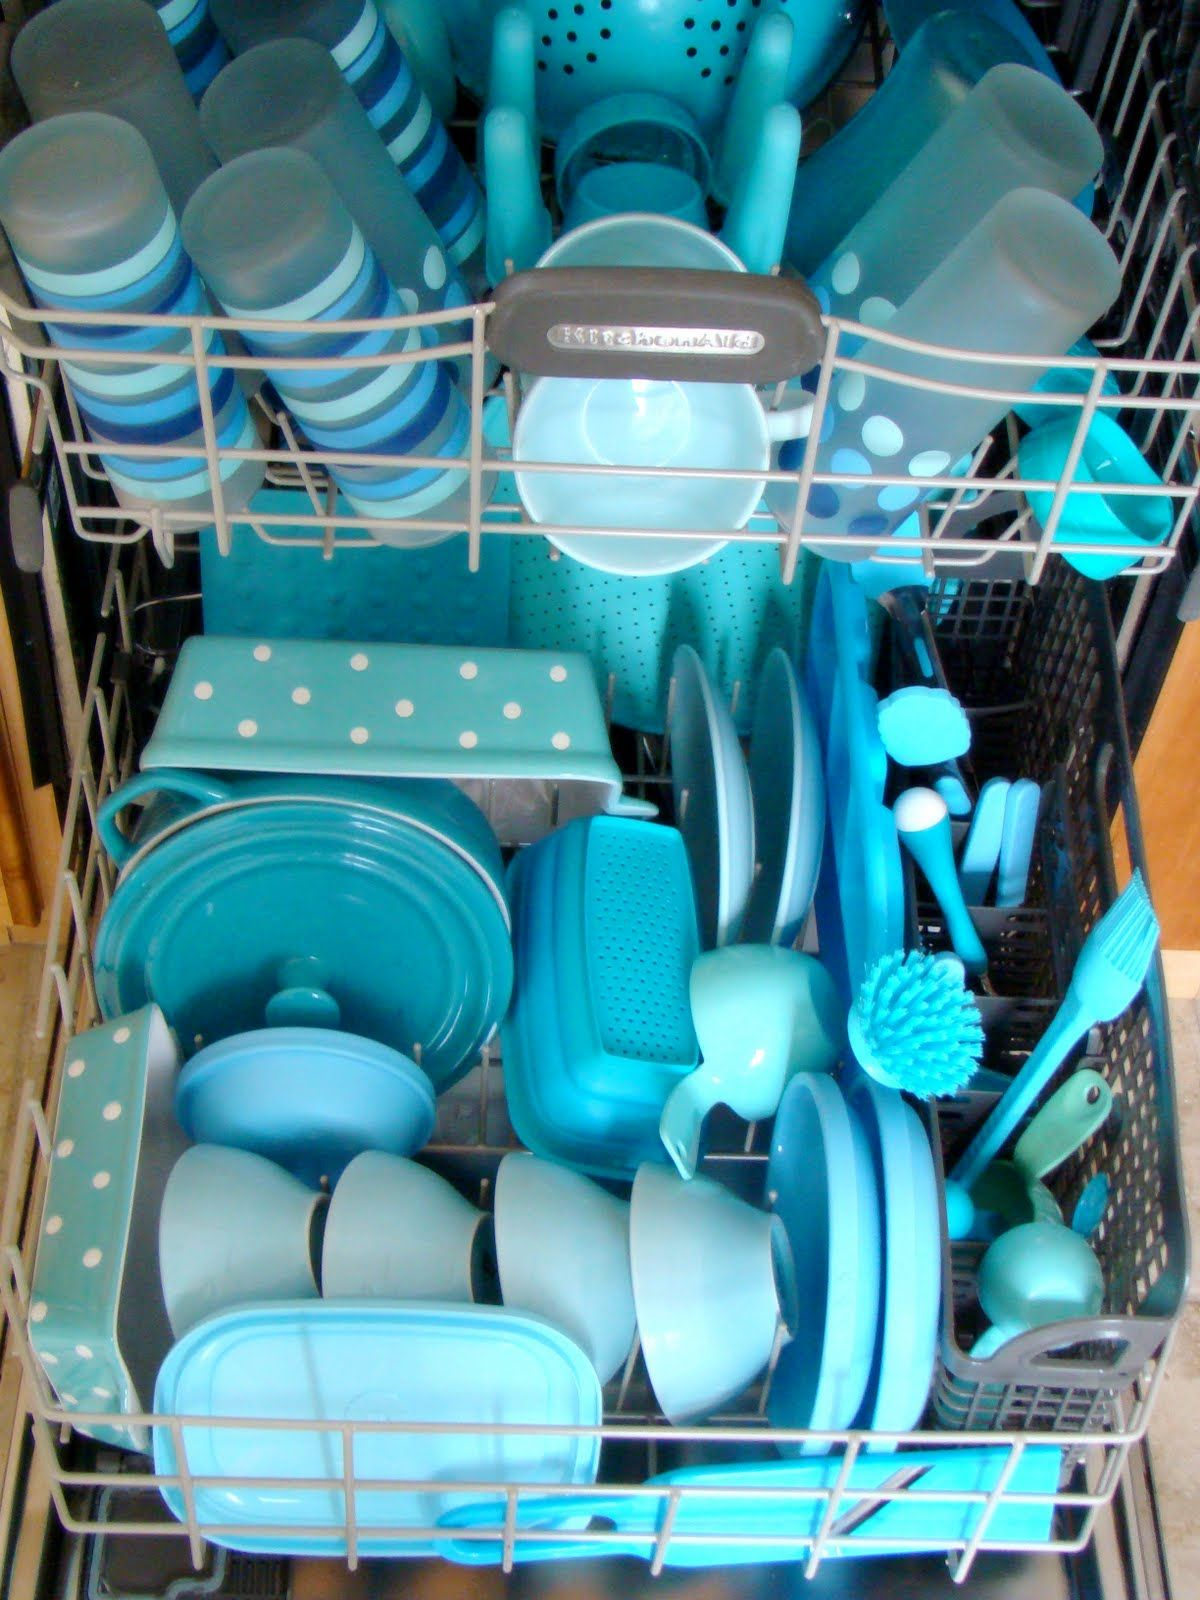 When a picture of a dishwasher full of dishes excites me, I get a little worried. Nonetheless, there it is.